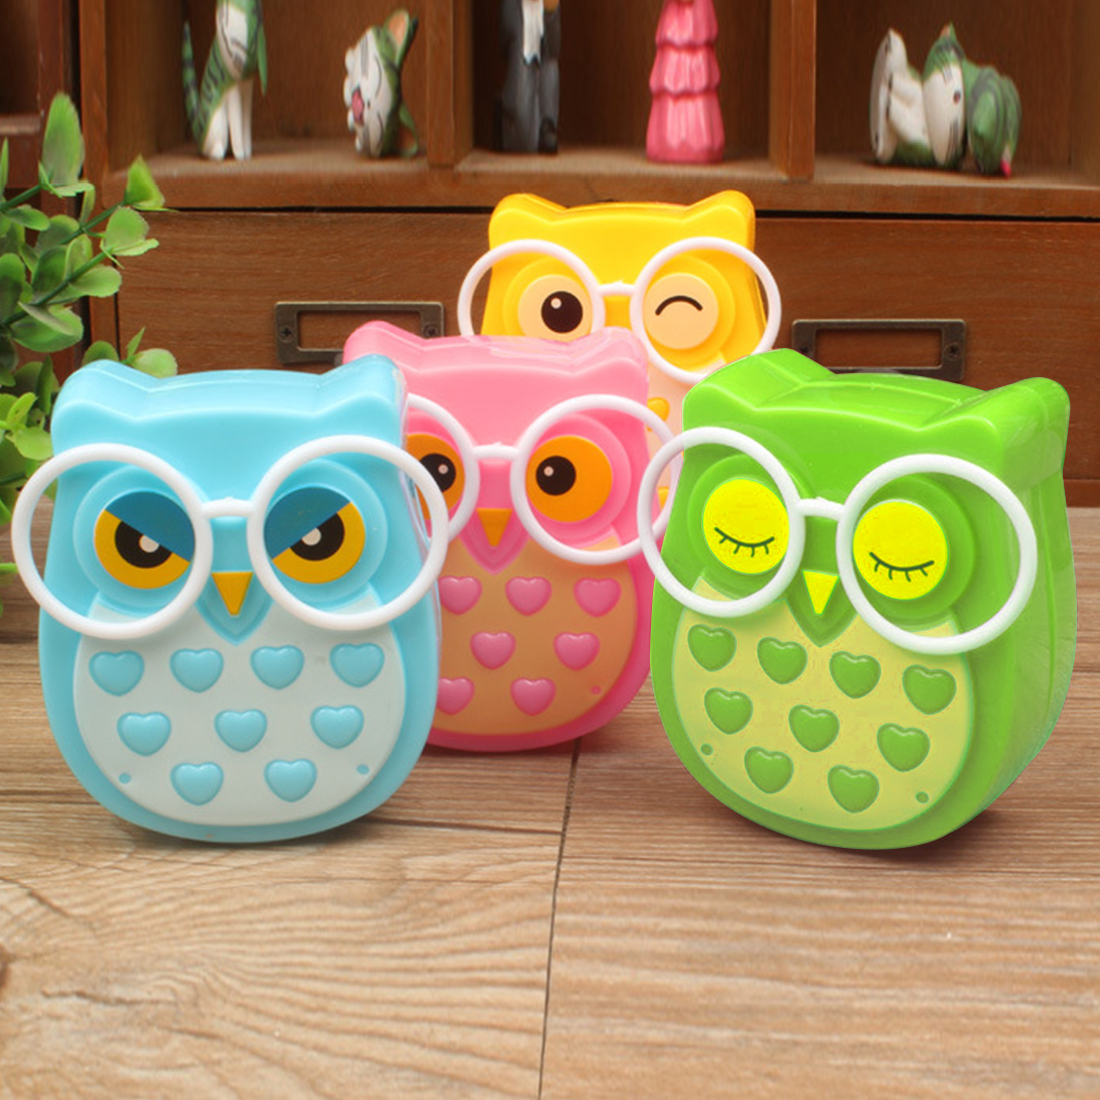 Mini Owl Led Night Light Auto Sensor Light Control Lamp US Plug Child Kids Baby Lighting Room Lamp Animal Socket Veilleuse